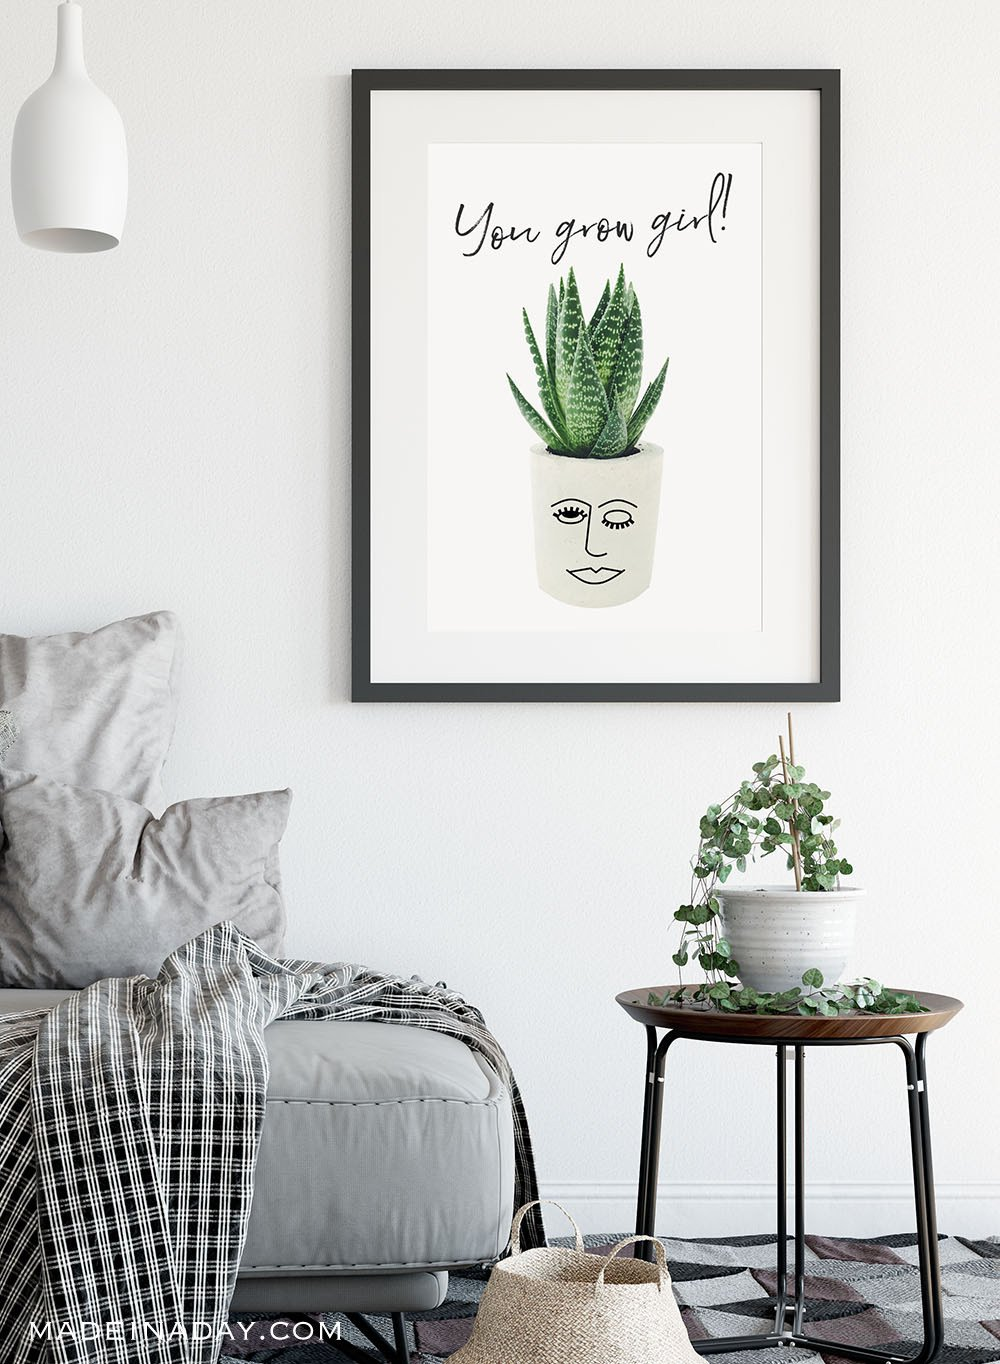 You grow girl printable wall art, you go girl wall art, you grow girl plant face, face planter succulent printable, boho succulent printable, aloe plant printable, gallery wall printables, green plant printables,